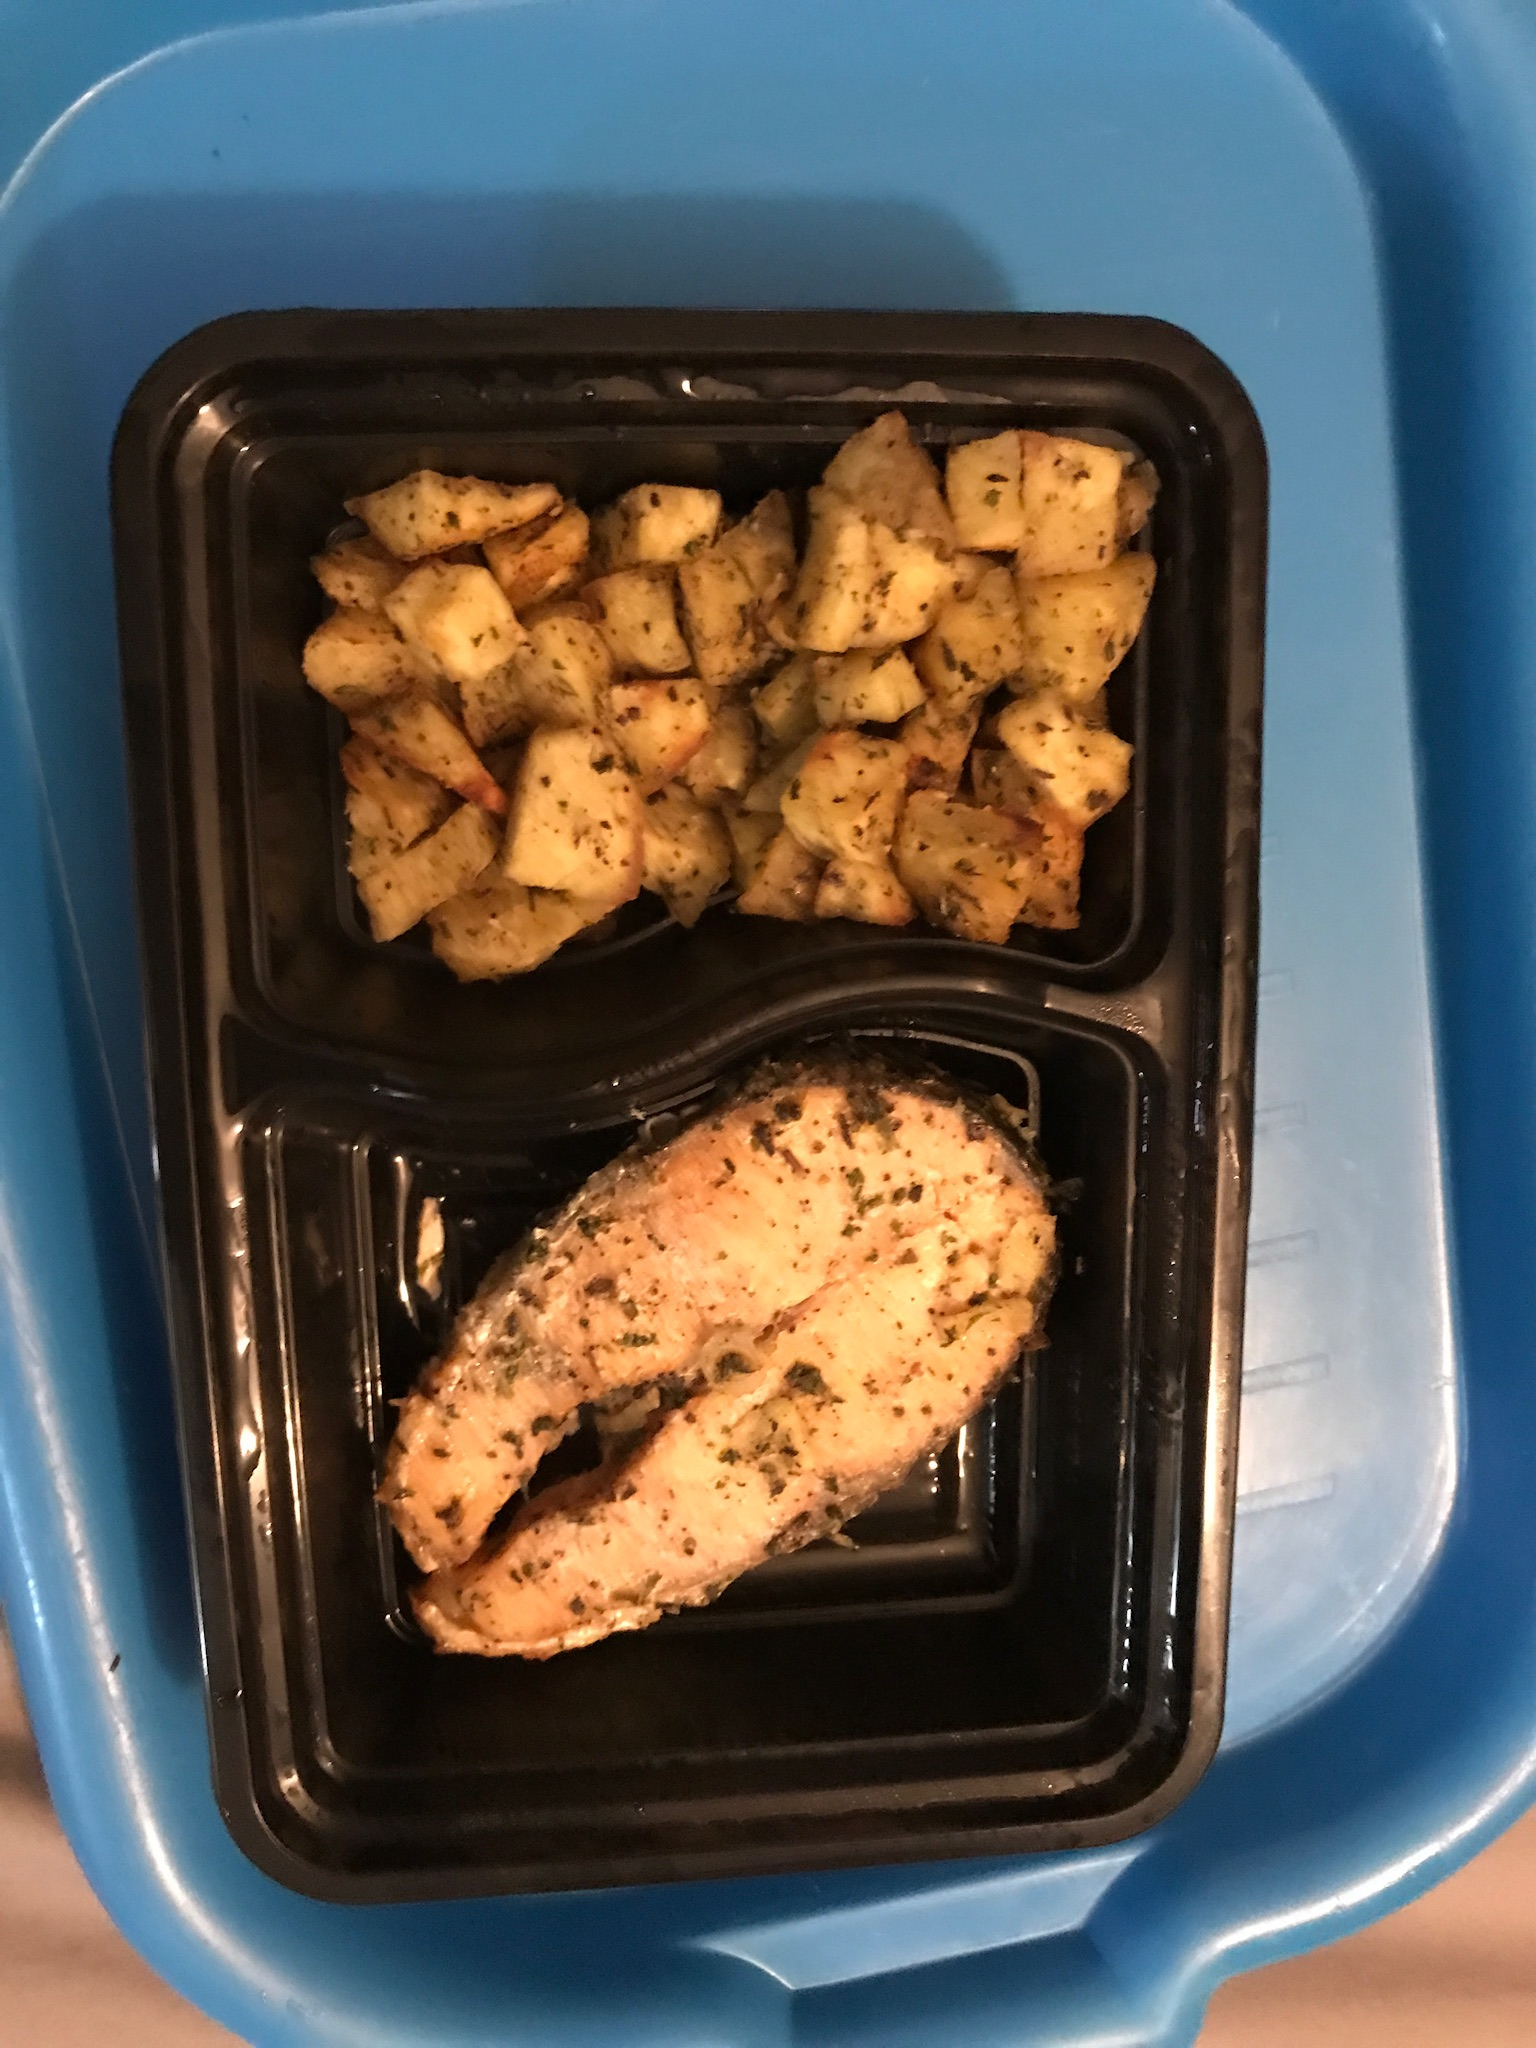 9.31amI eat some salmon and sweet potato left over from last week's meal prep.  -